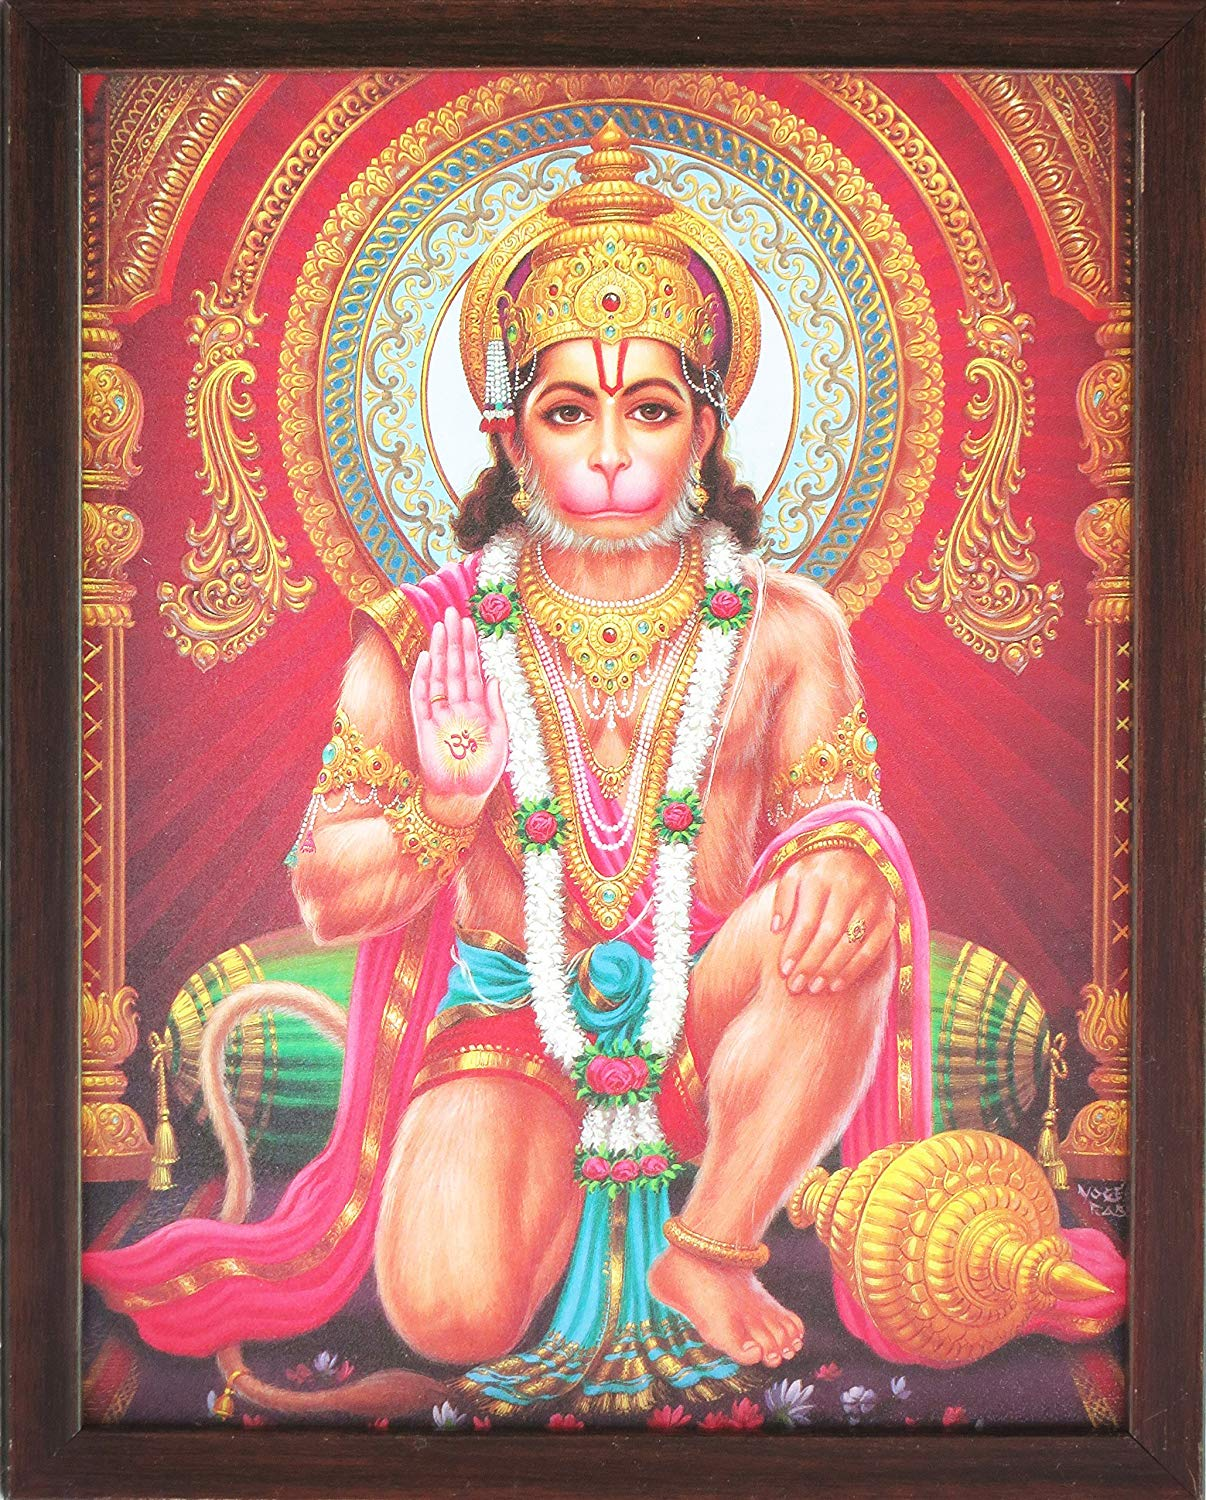 Hindu Lord Hanuman Giving Blessings, a Holy Hindu Religious Poster Painting with Frame for Worship Purpose